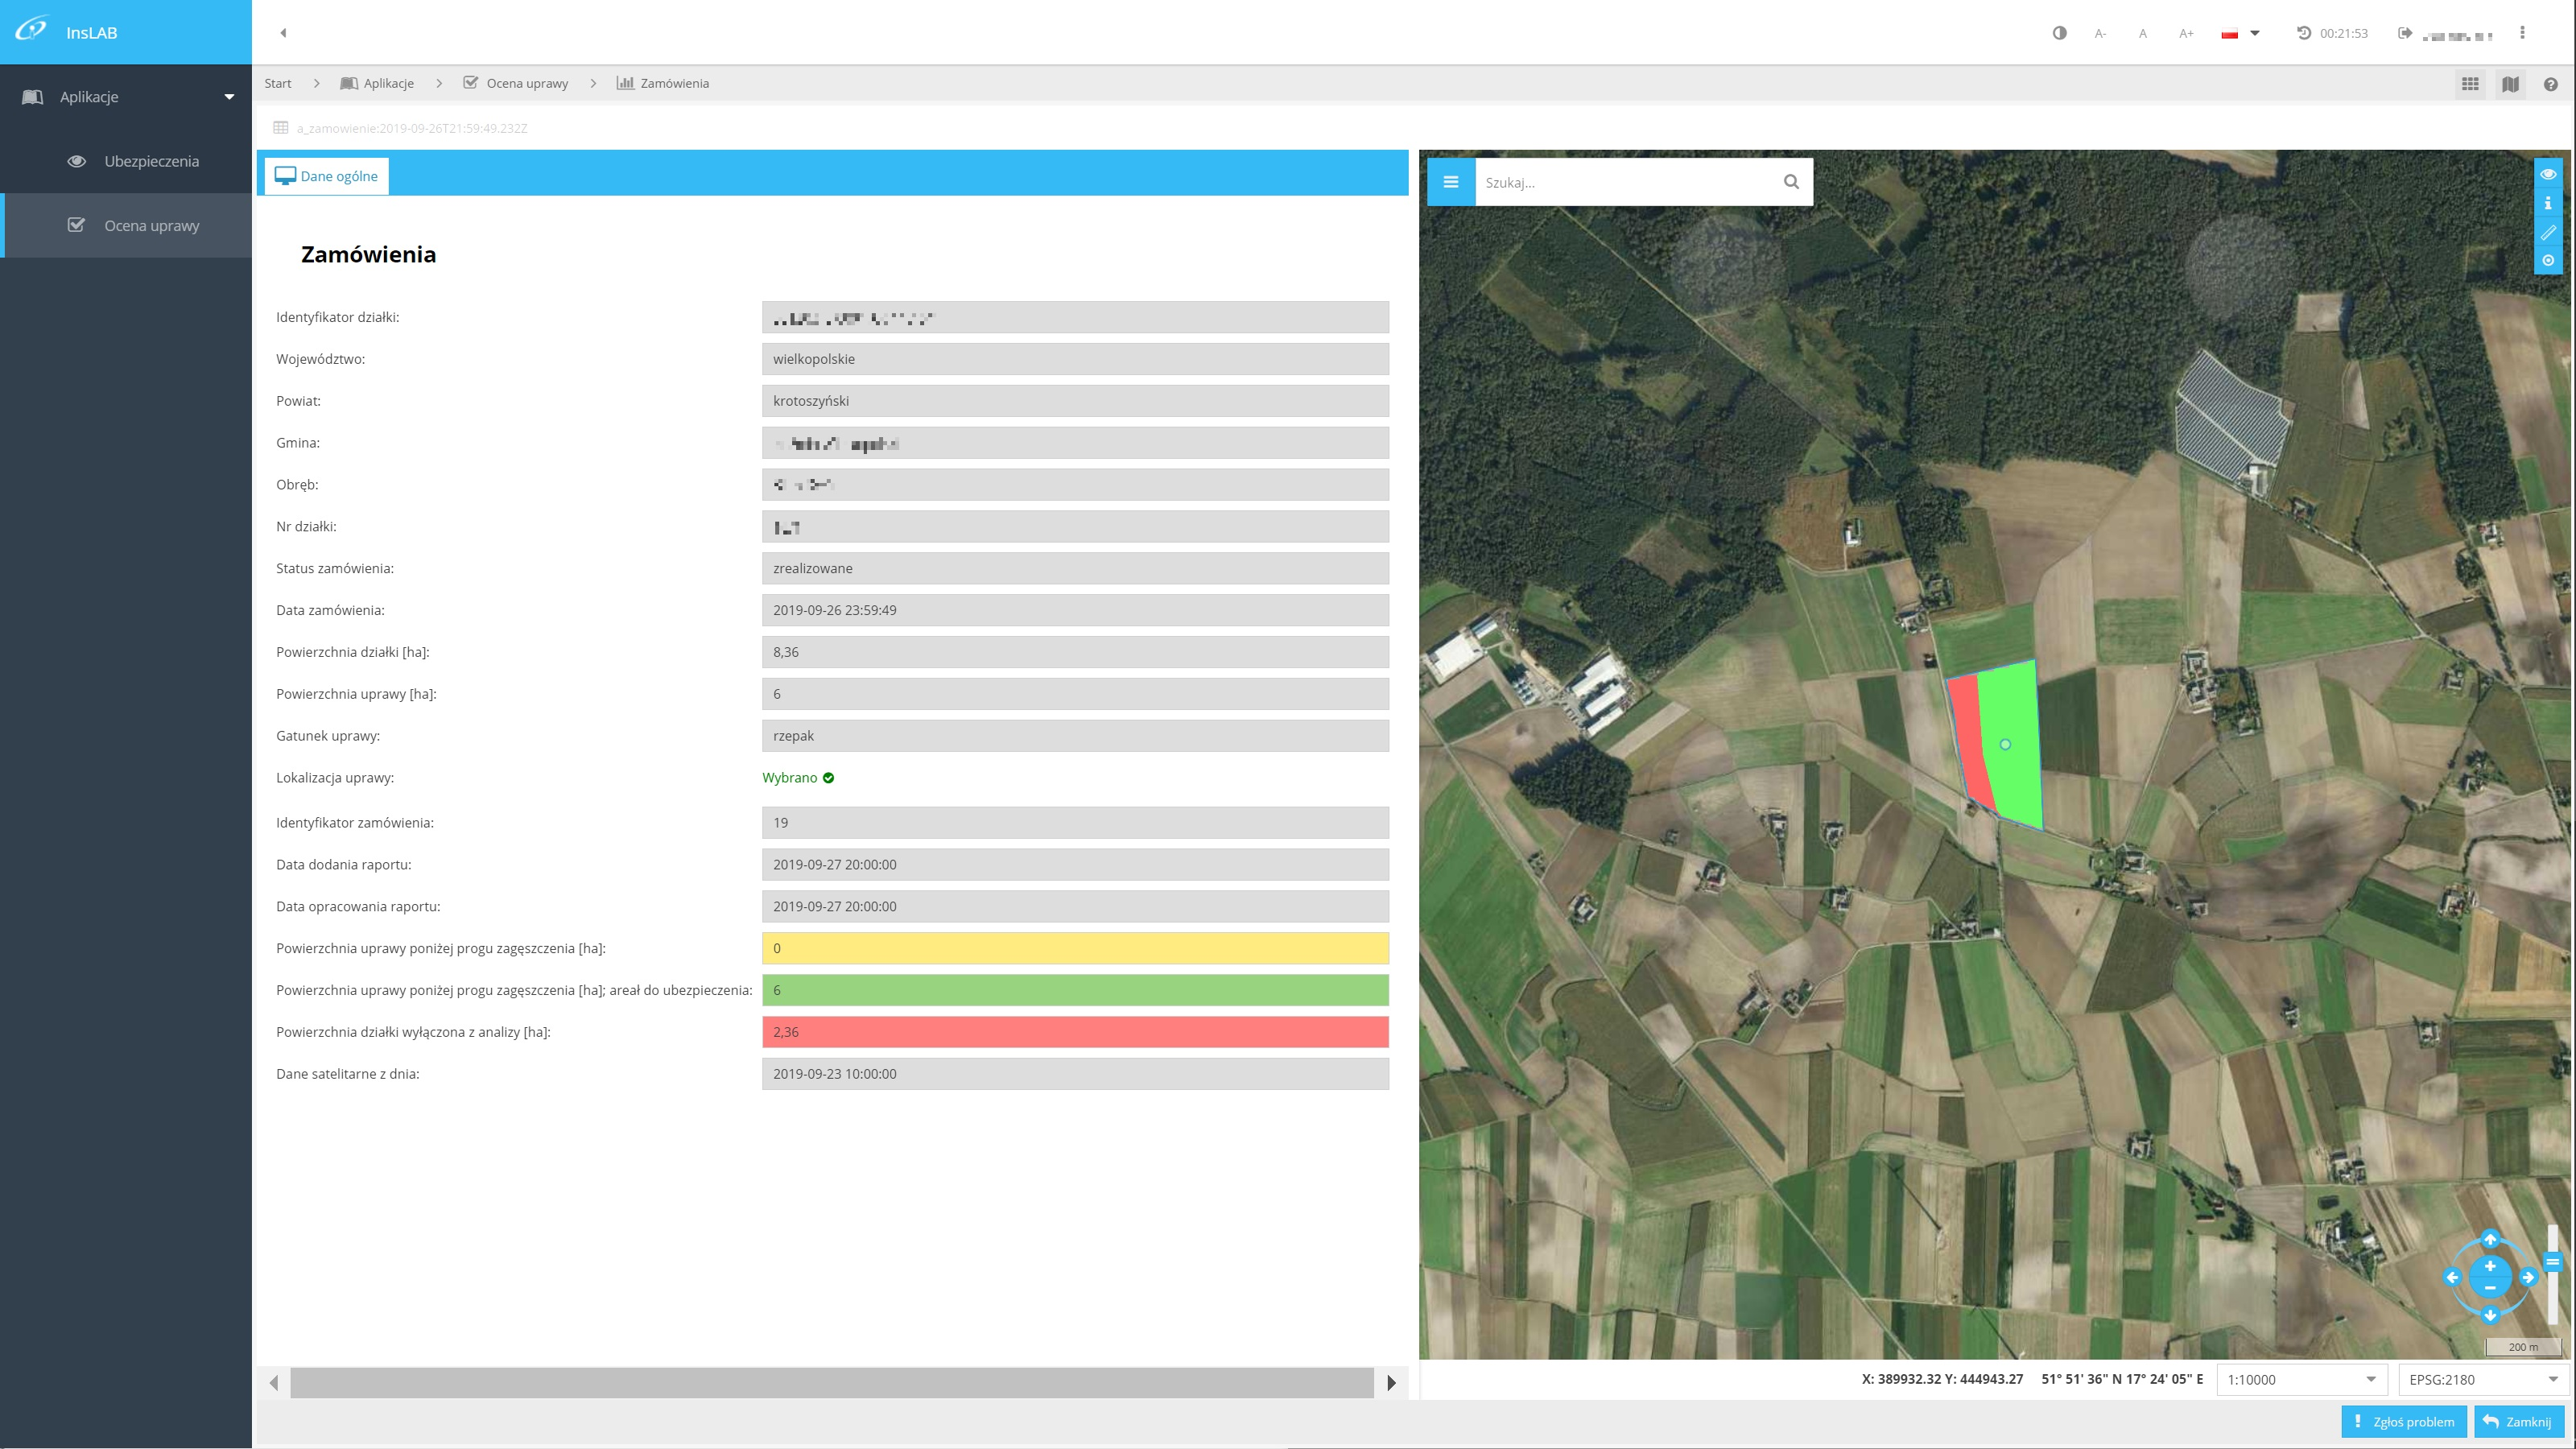 InsLAB.pl - Remote sensing analysis concerning winter crops density